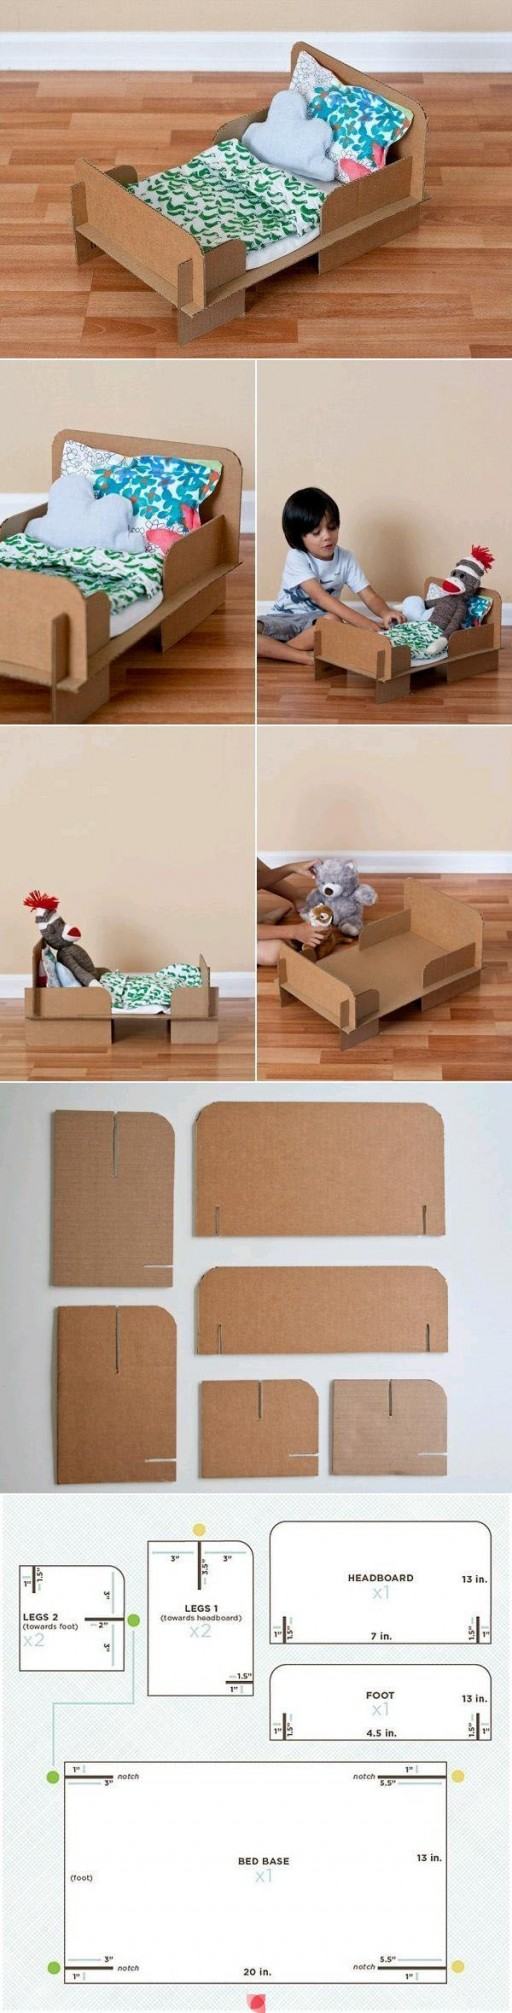 How to make cute cardboard DIY toy kids bed step by step tutorial instructions